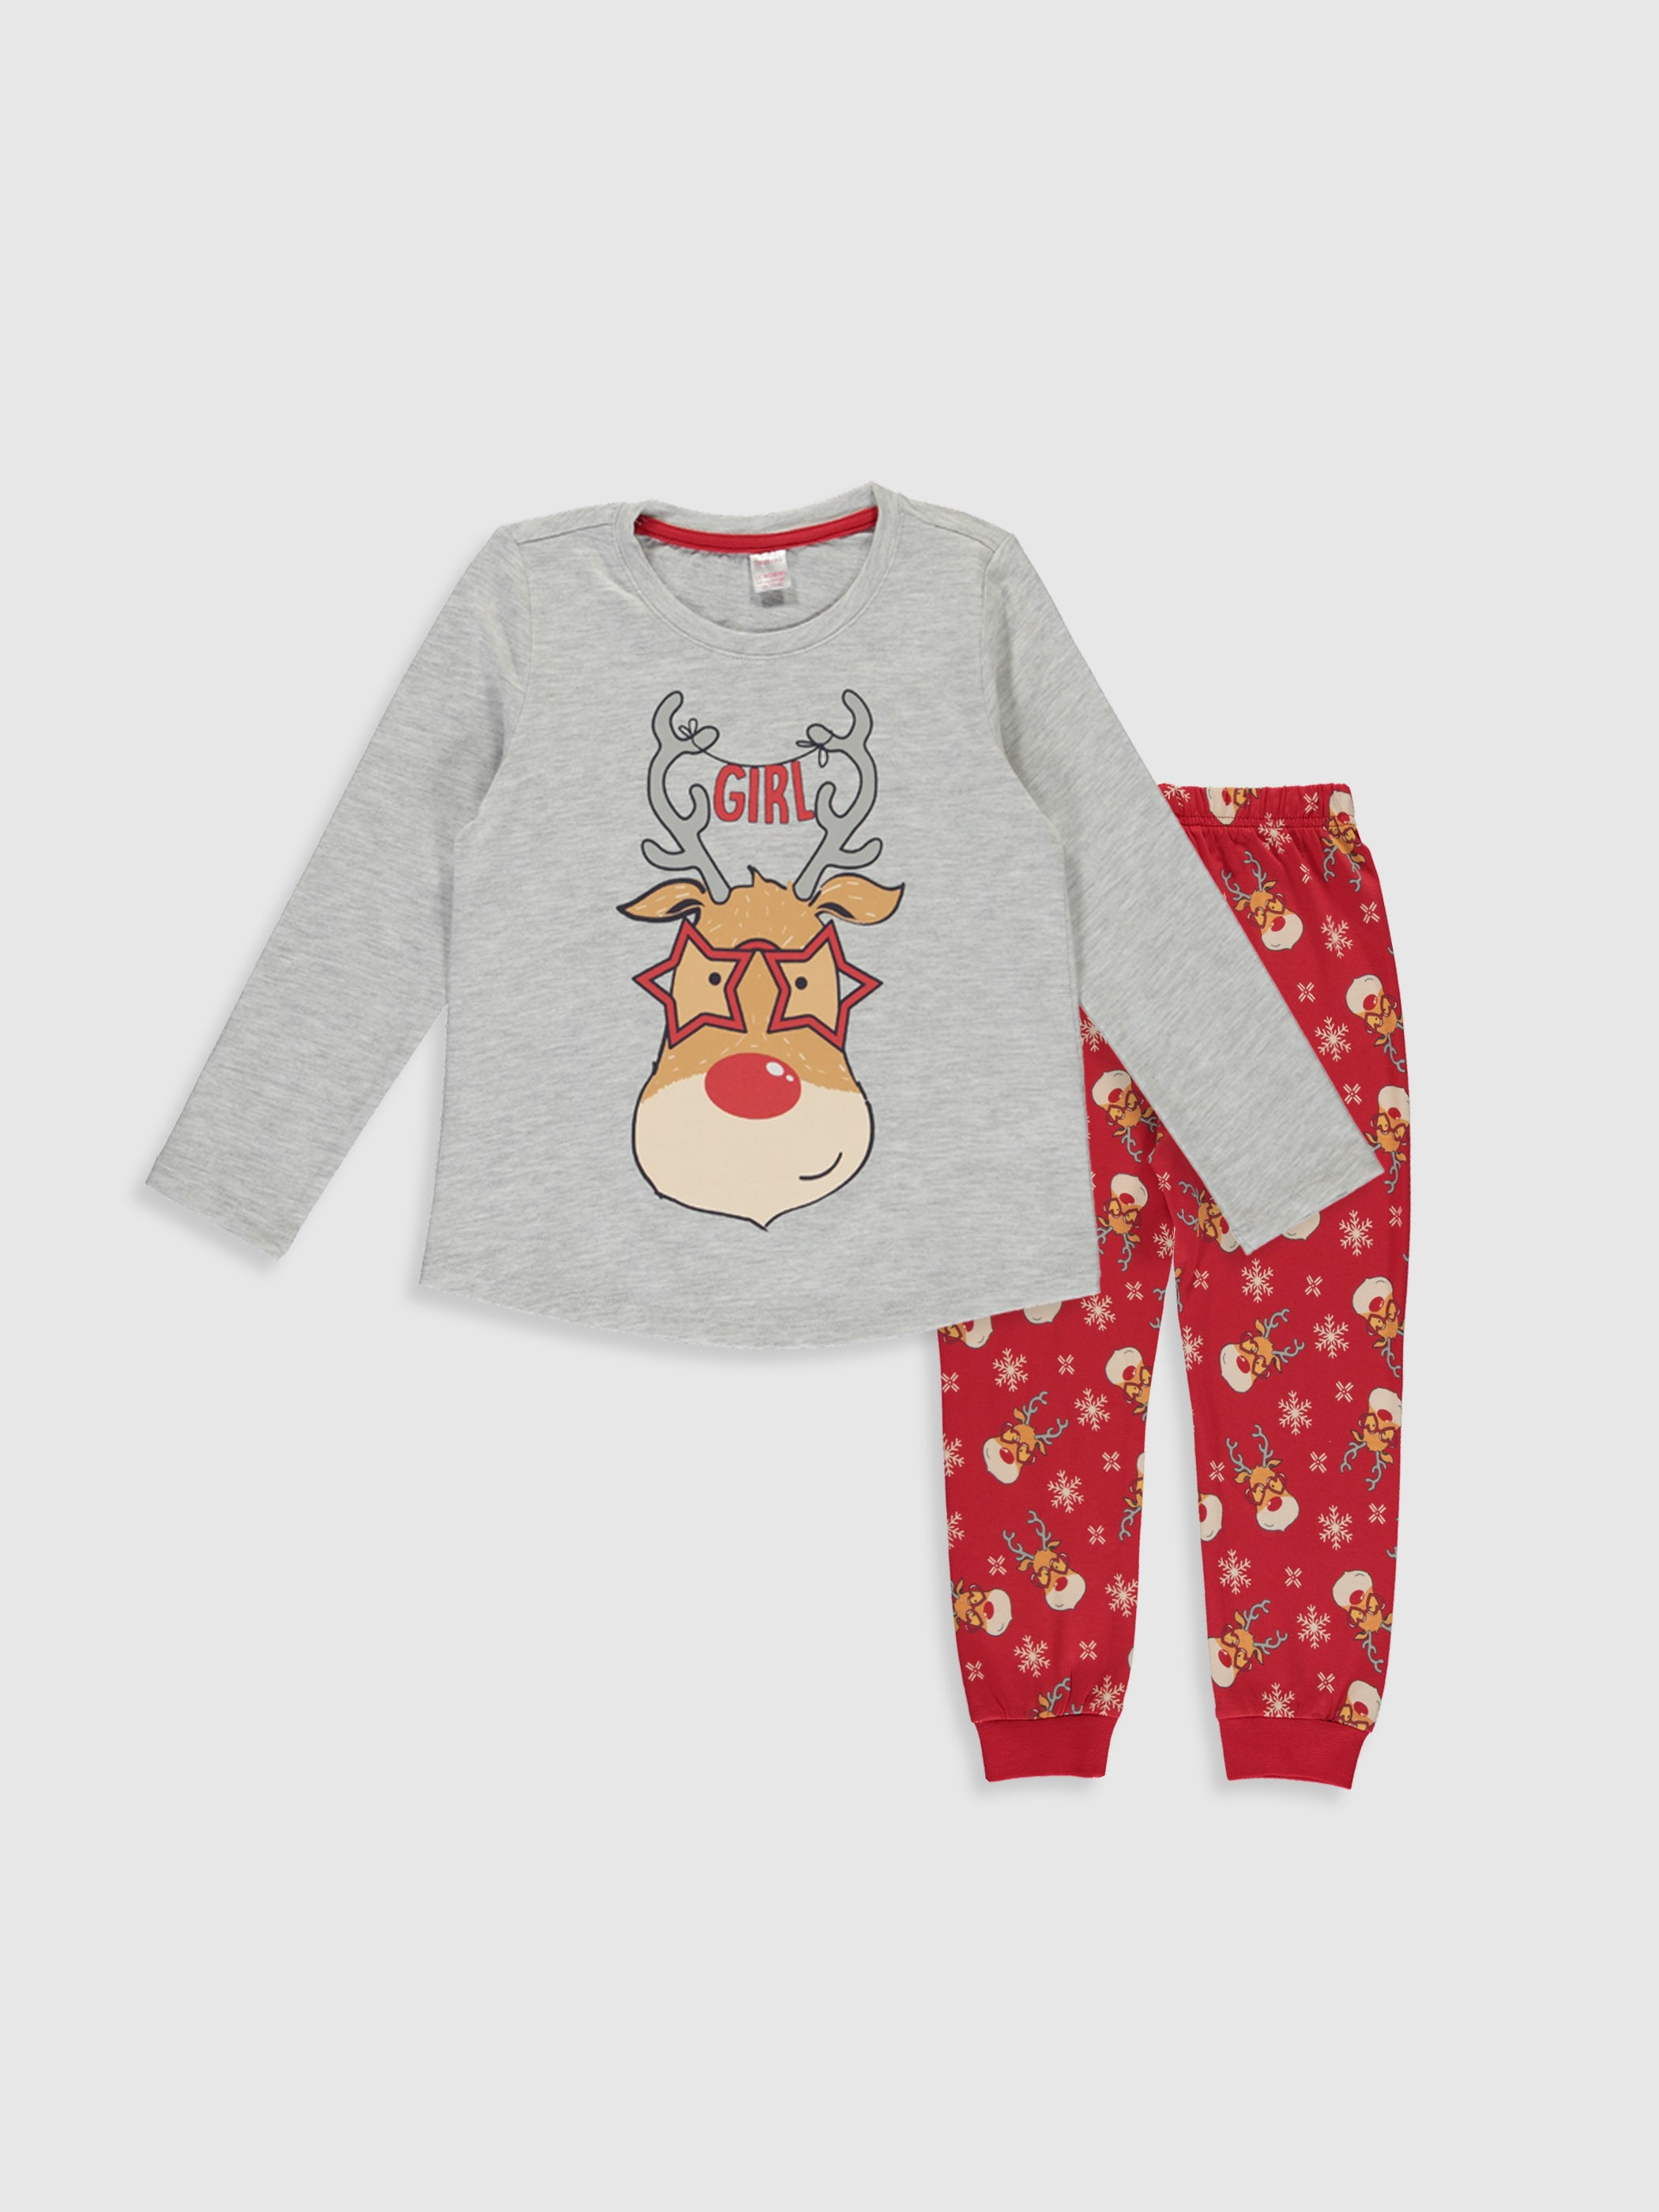 GREY - Pyjamas Set - 9WJ924Z4